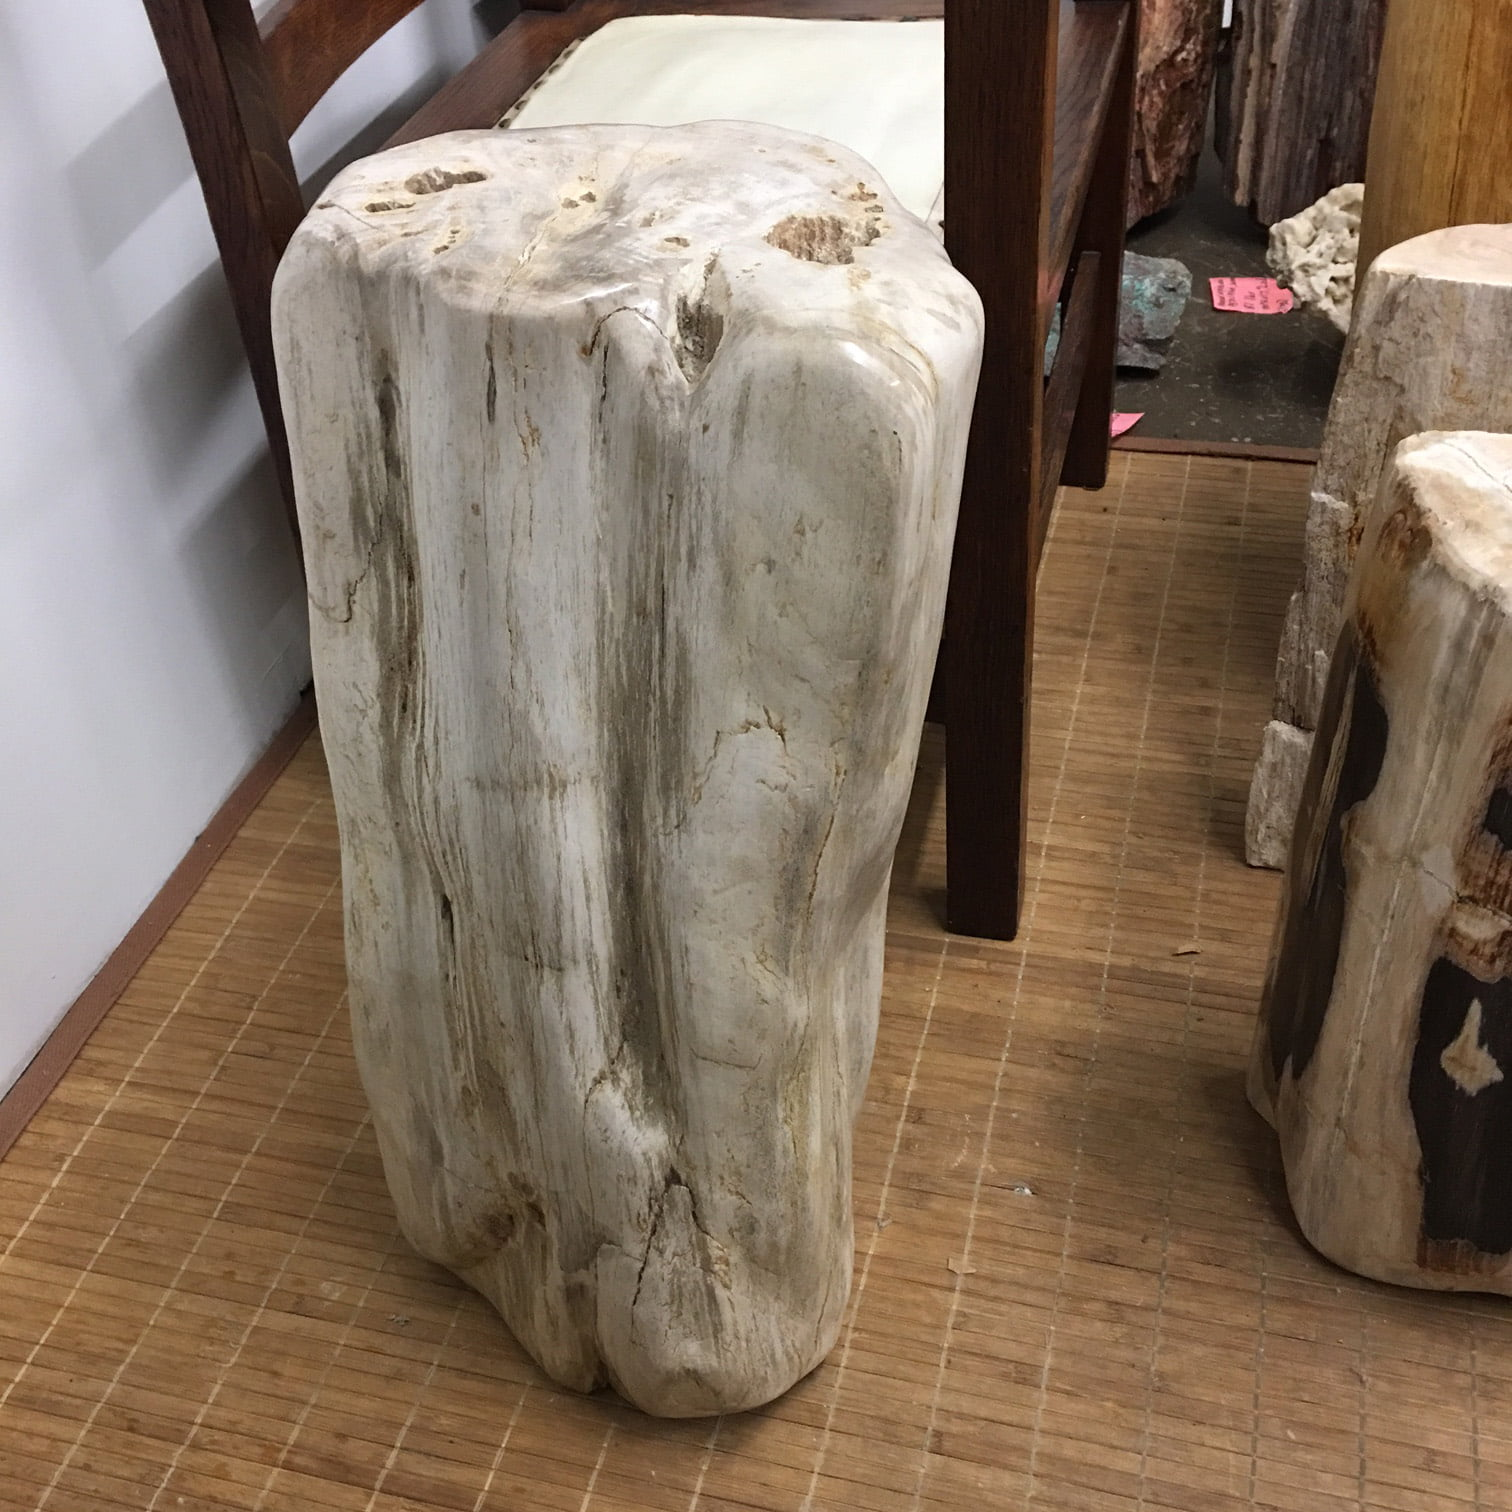 Tremendous Ipw1 Petrified Wood Table Or Pedestal Or Stool 22 75H X 9L X 7W 109 Lbs Gmtry Best Dining Table And Chair Ideas Images Gmtryco